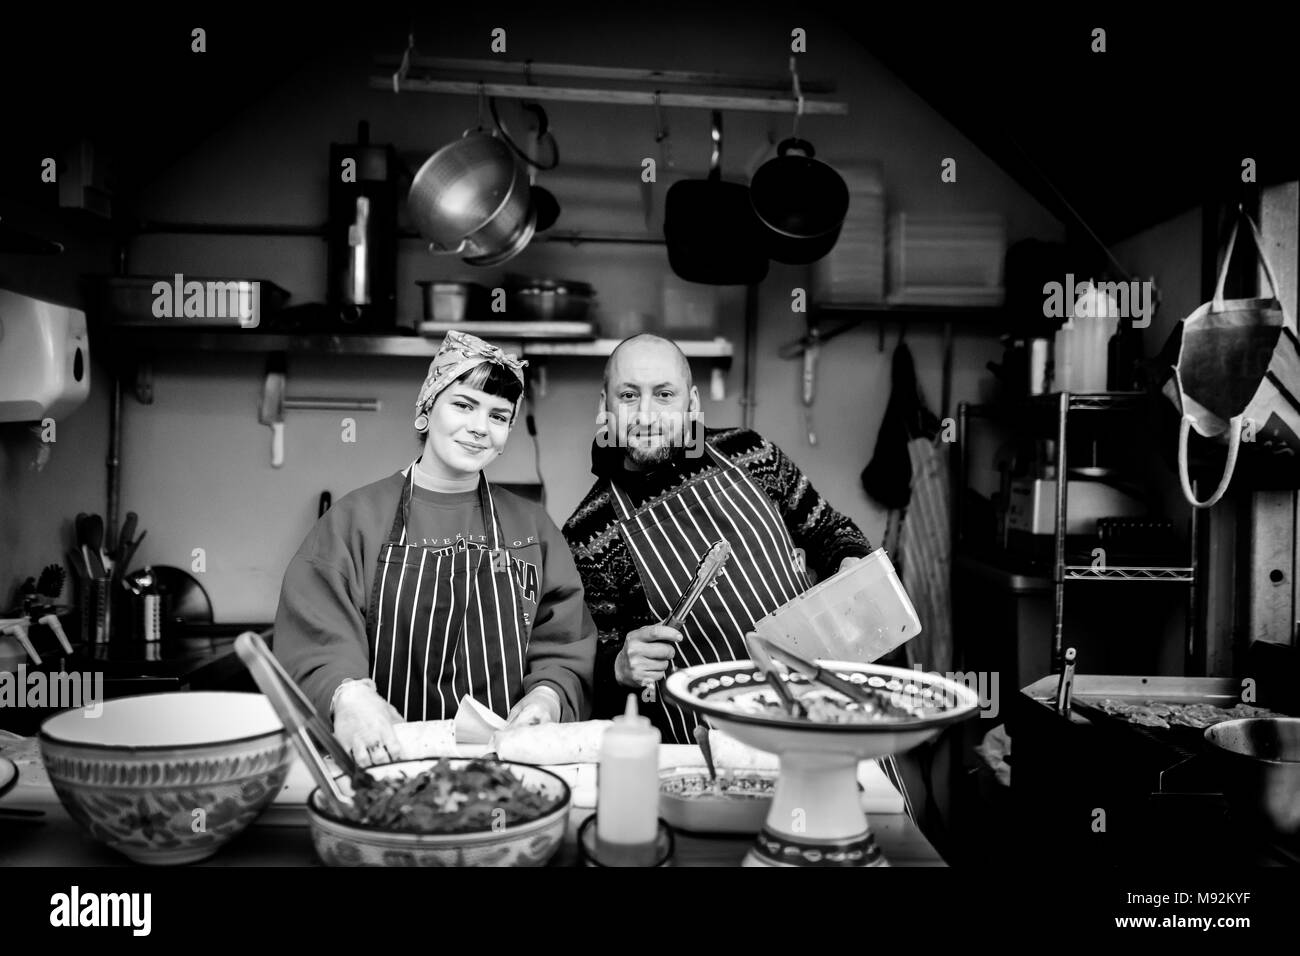 The Shambles, York 16th February 2018. Woman in a head scarf and male man chef in an apron on a hot food stand, stall or kitchen posing for the camera - Stock Image